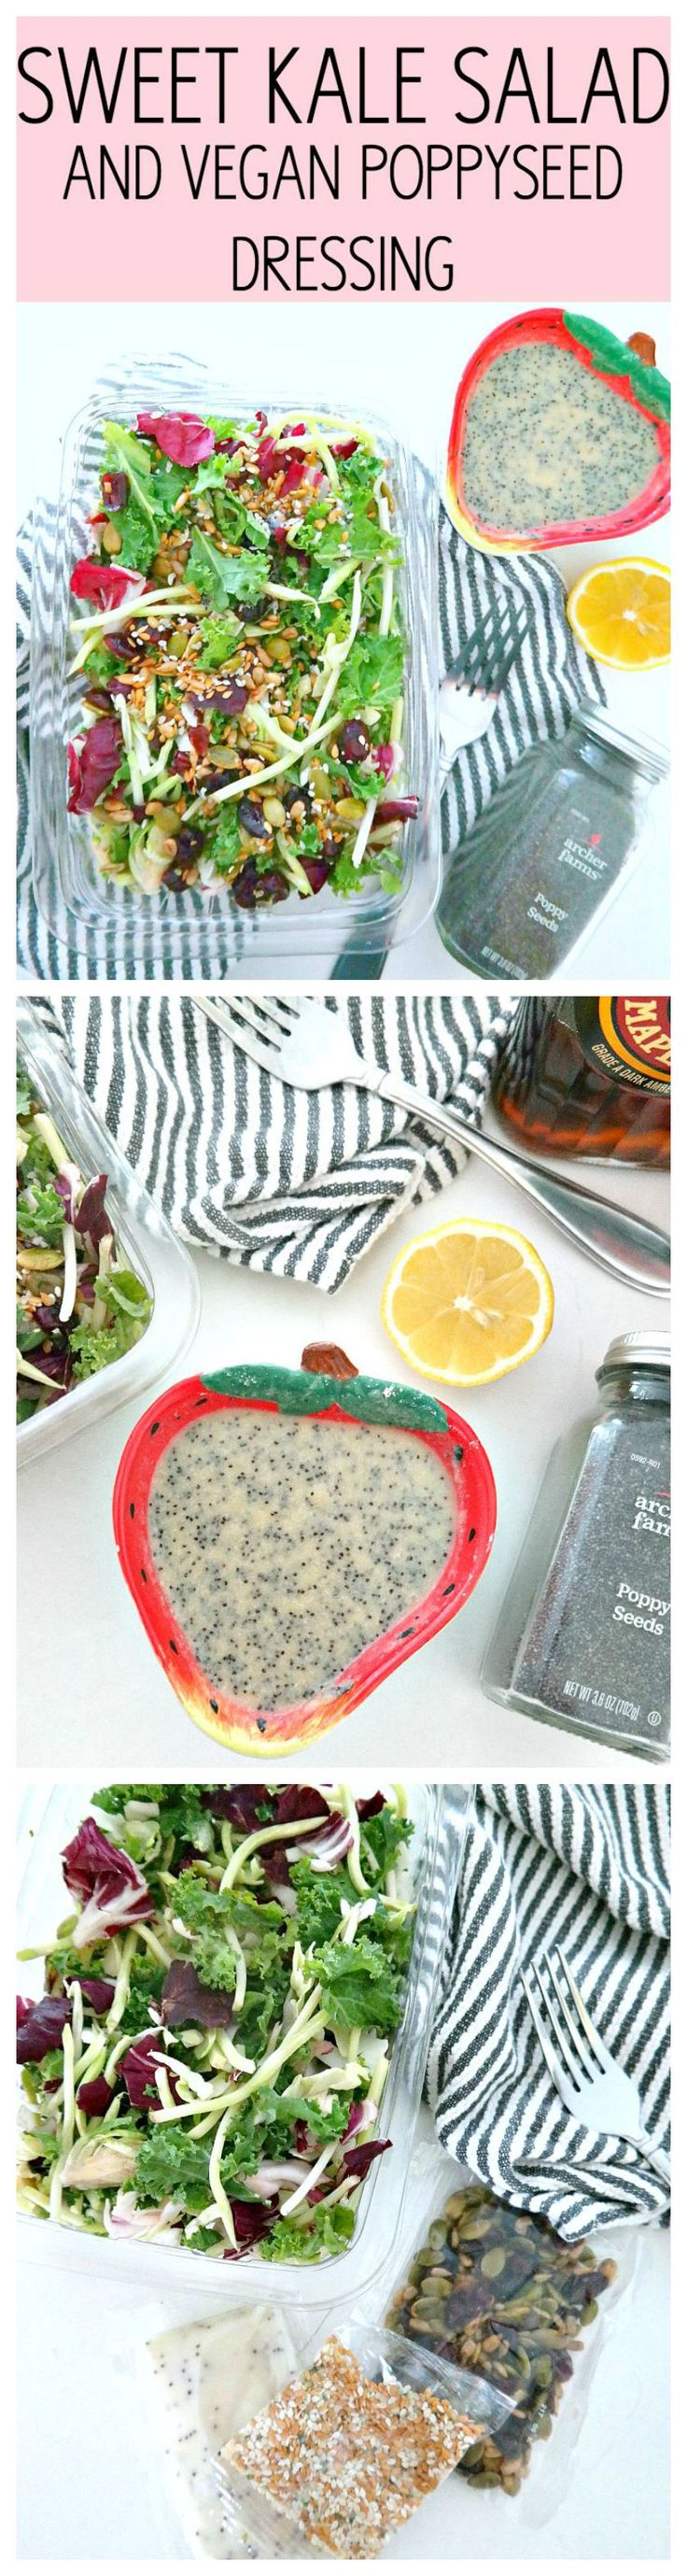 Sweet Kale Salad and Vegan Poppyseed Dressing - with a mix of kale, broccoli, brussels sprouts and lots of superfood seeds as well as a simple vegan poppyseed dressing! From The Glowing Fridge #EatSmartVeggies